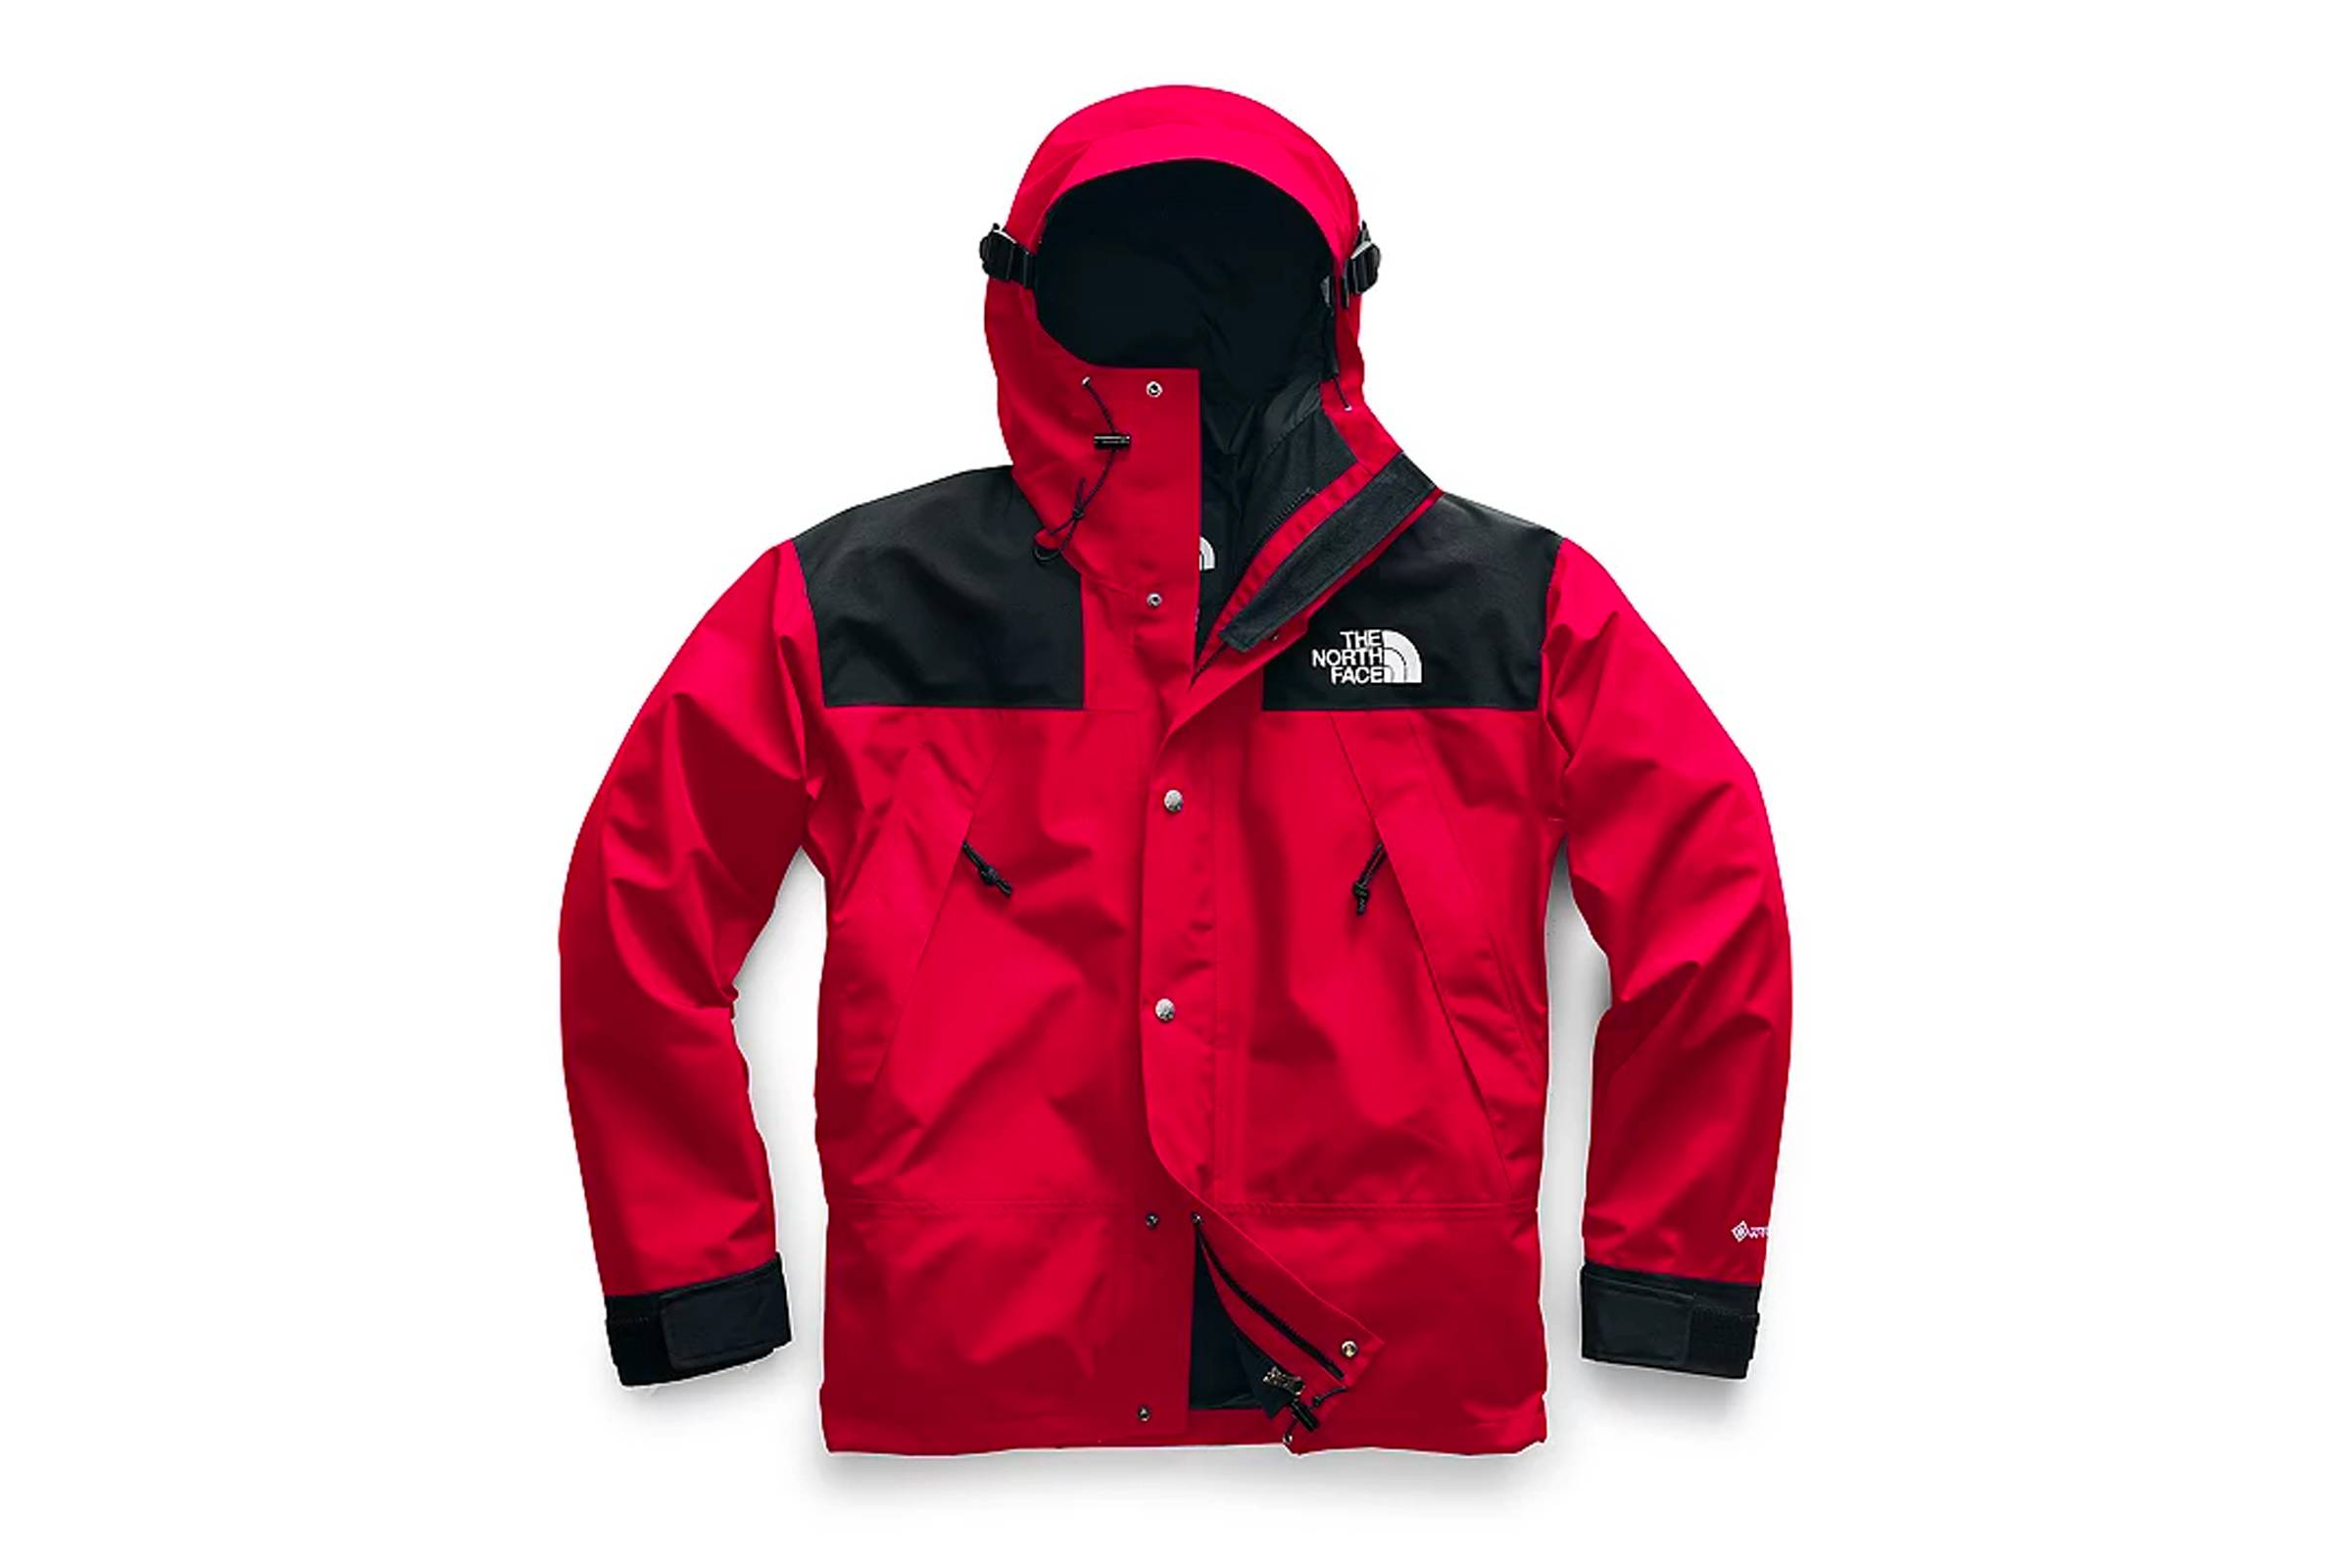 You See This Coat? Vol 2: The North Face Mountain Jacket